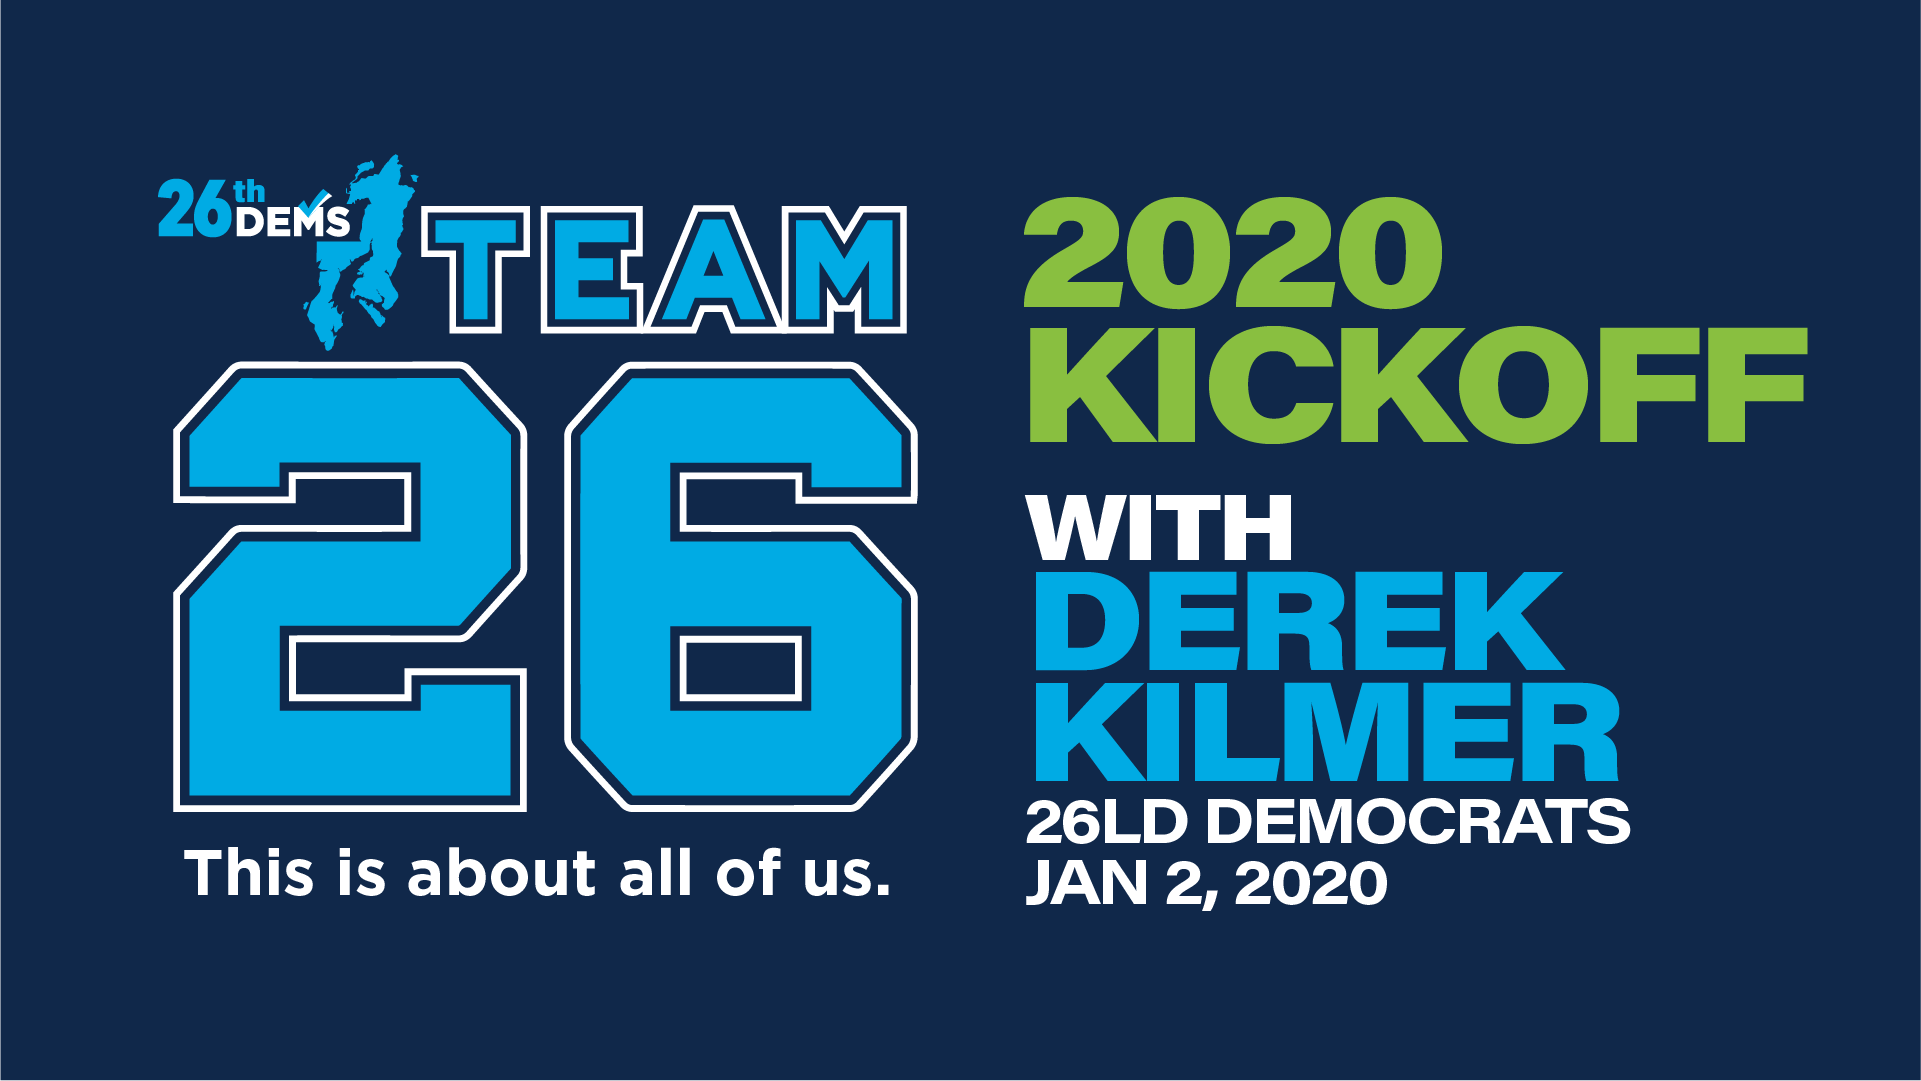 January 2nd General Meeting Program: TEAM 26 KICKOFF 2020